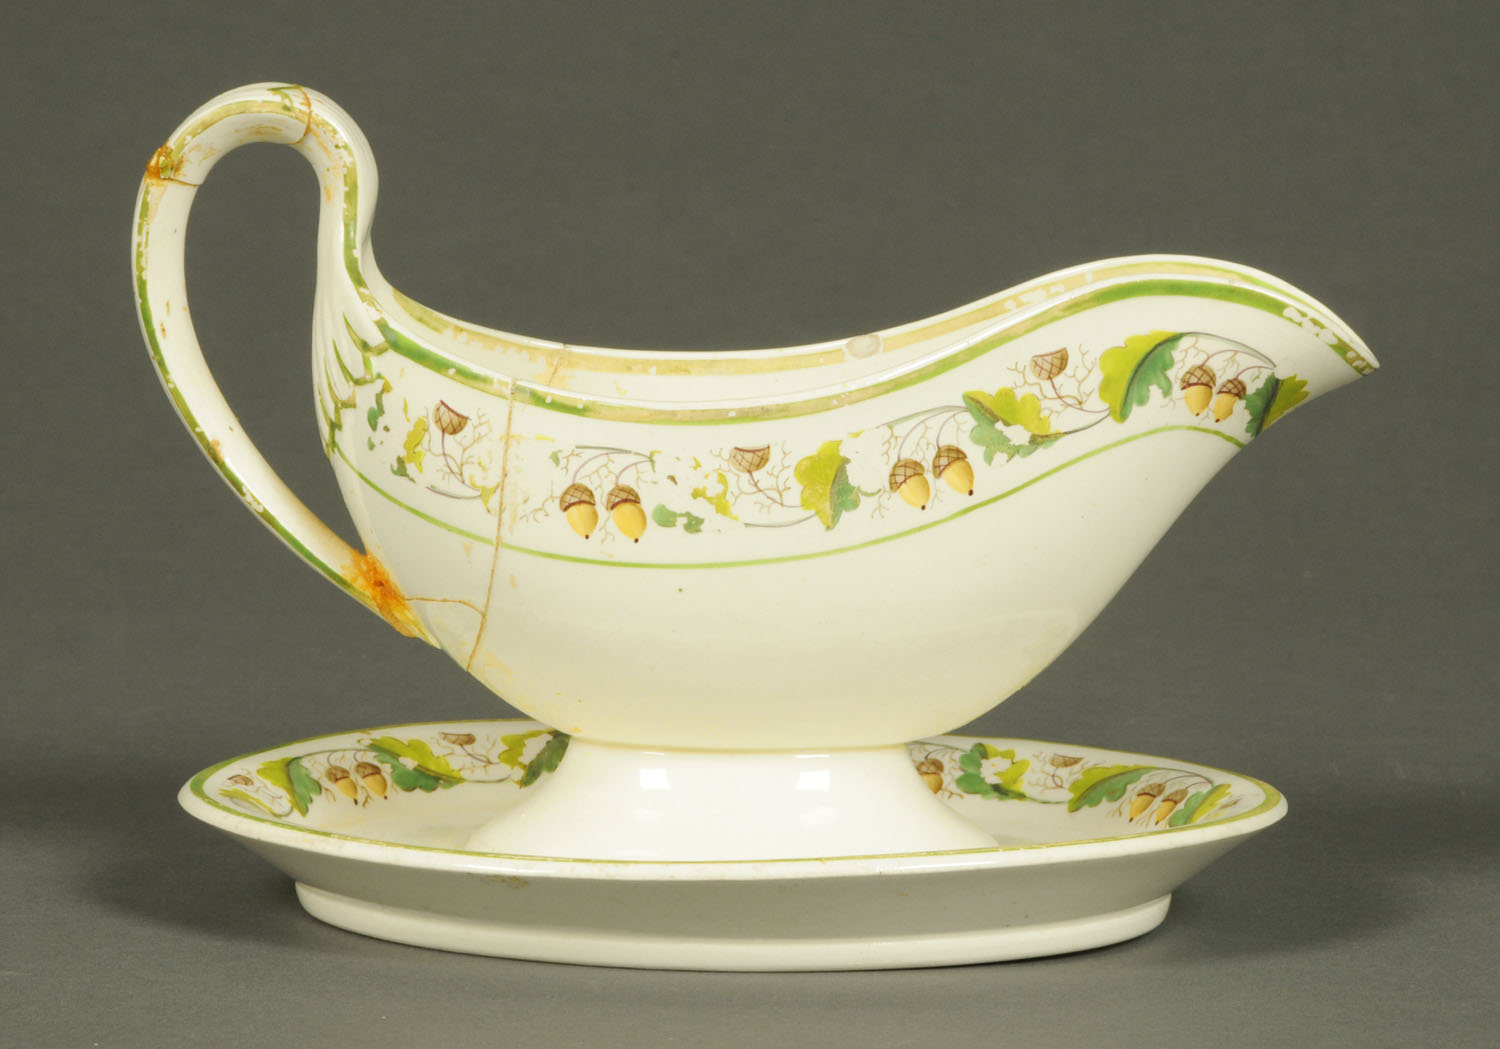 Lot 22 - A Davenport creamware sauce boat and stand, decorated with oak leaves and acorns, Patent Number 442.